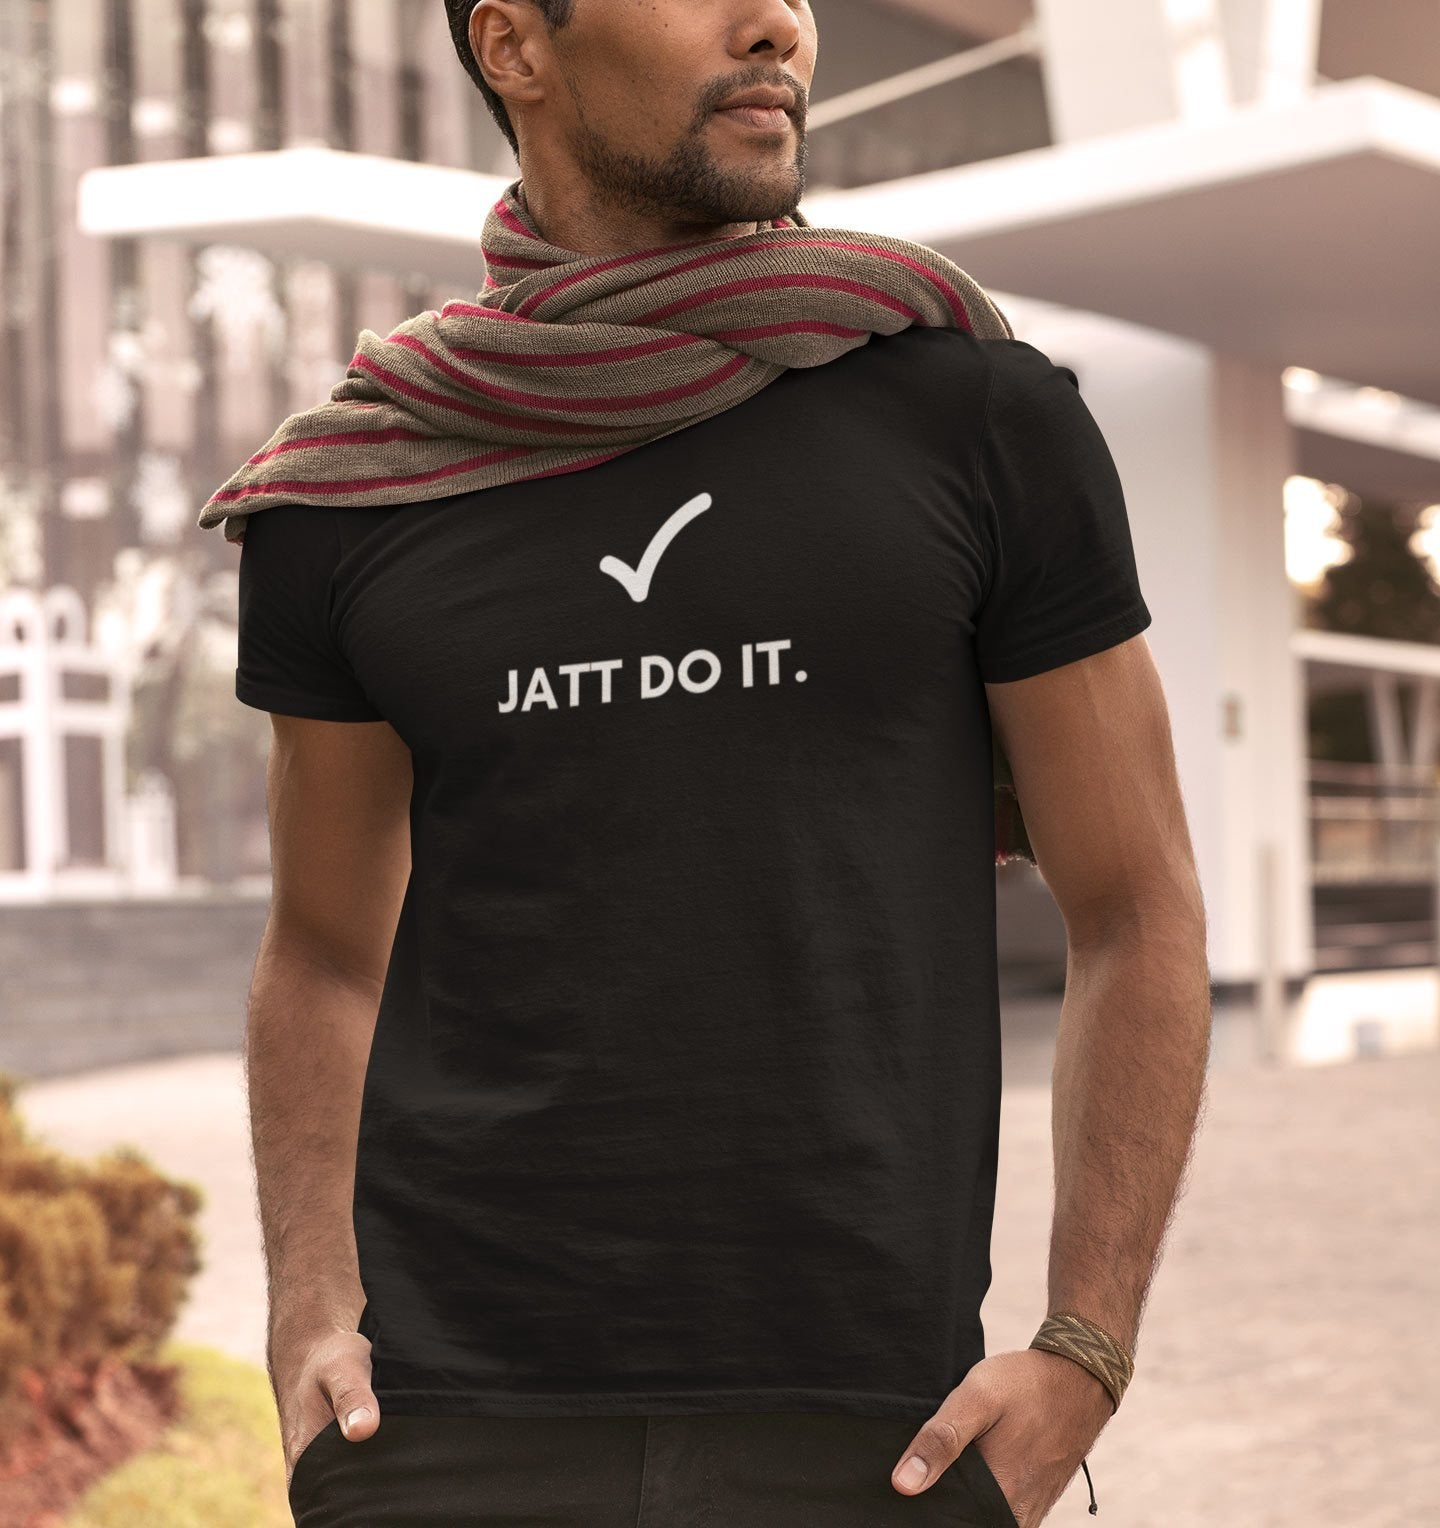 Jatt Do It T-Shirt